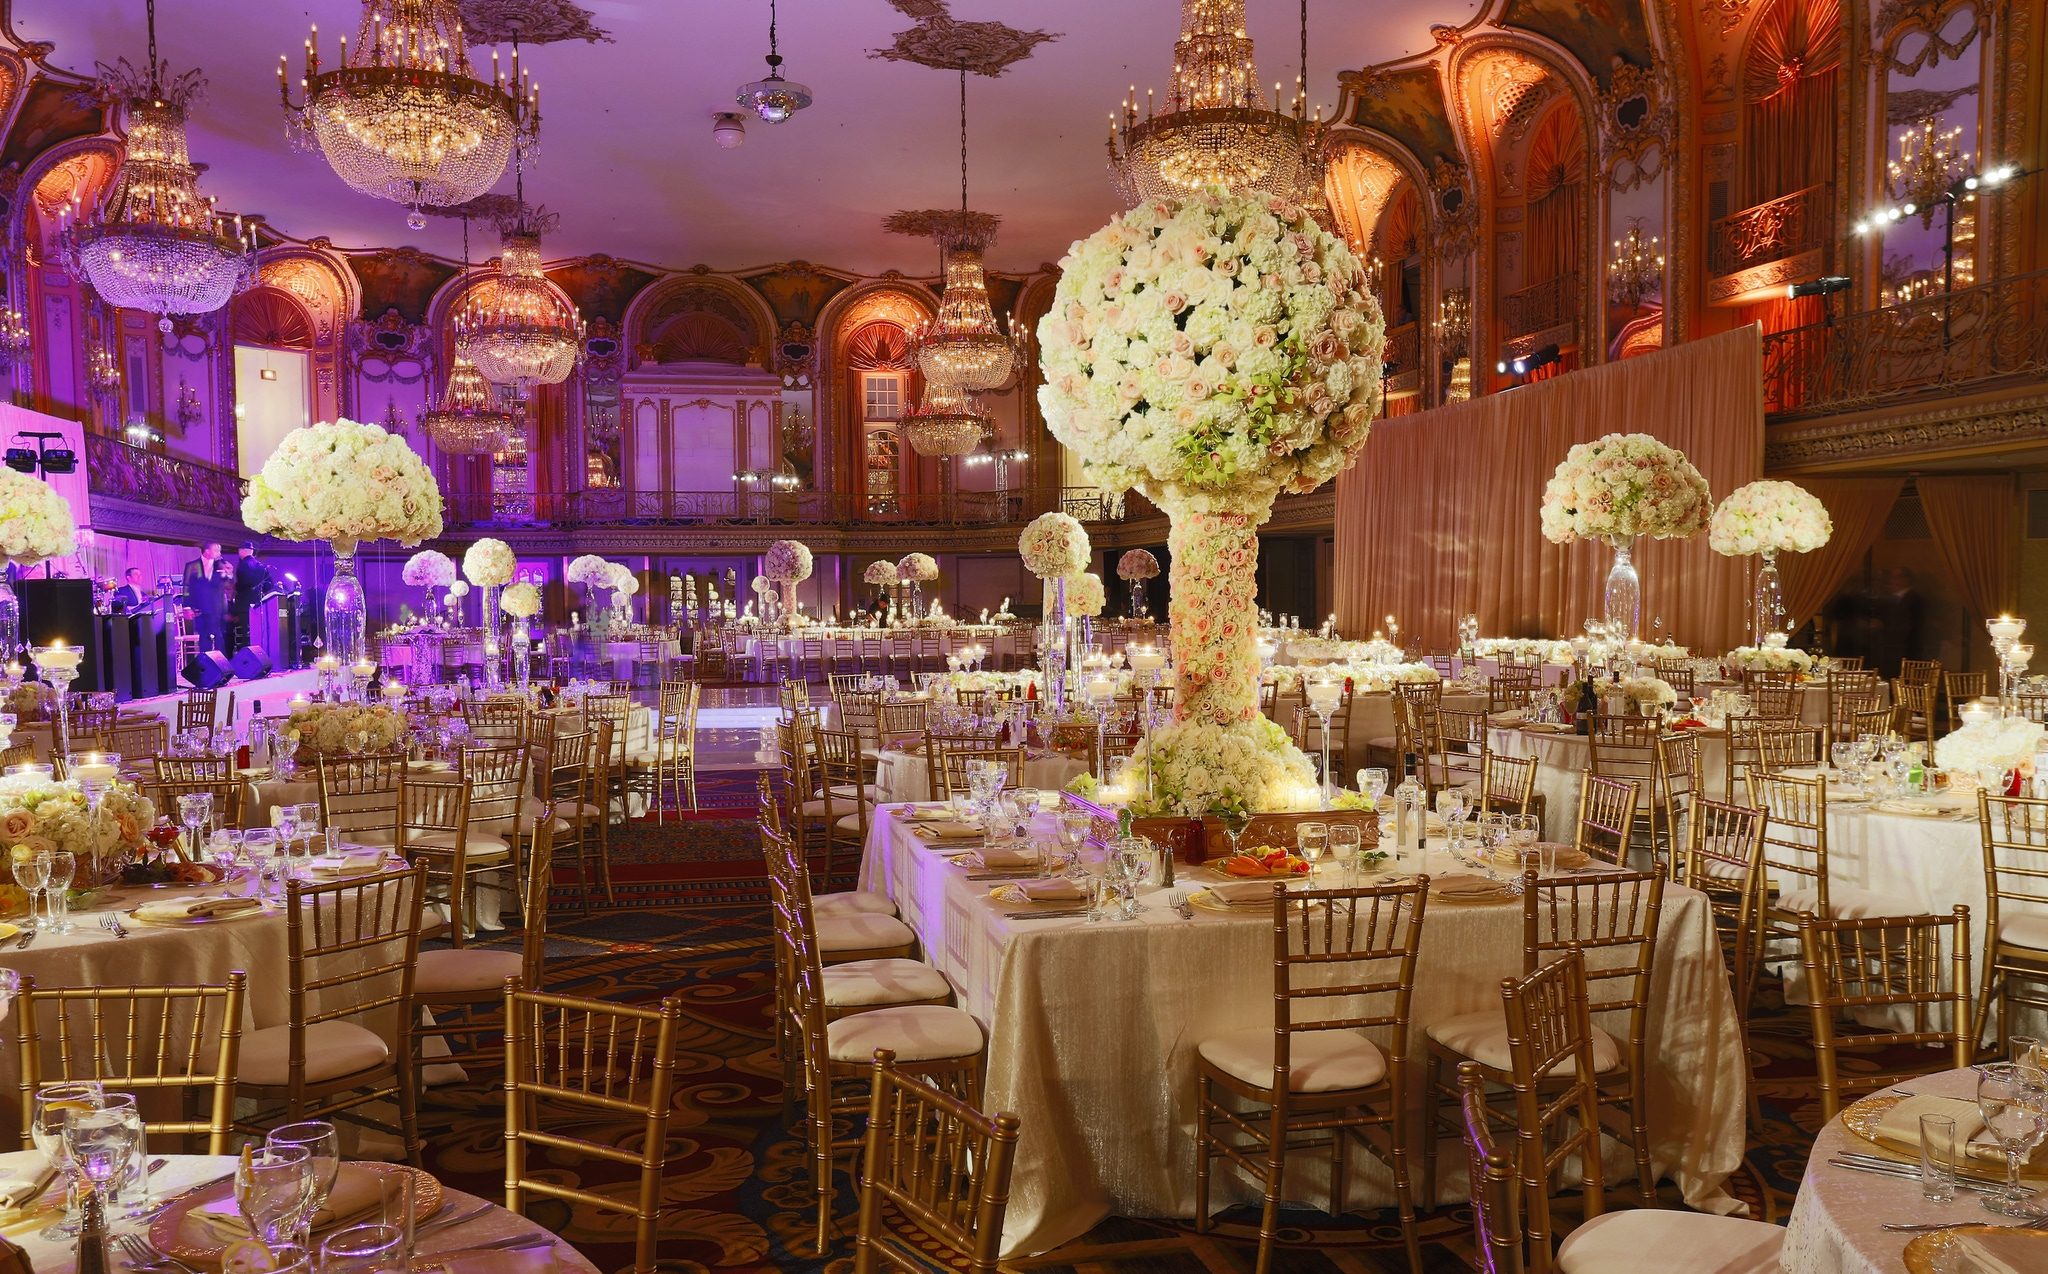 Best wedding decor - YANNI DESIGN STUDIO